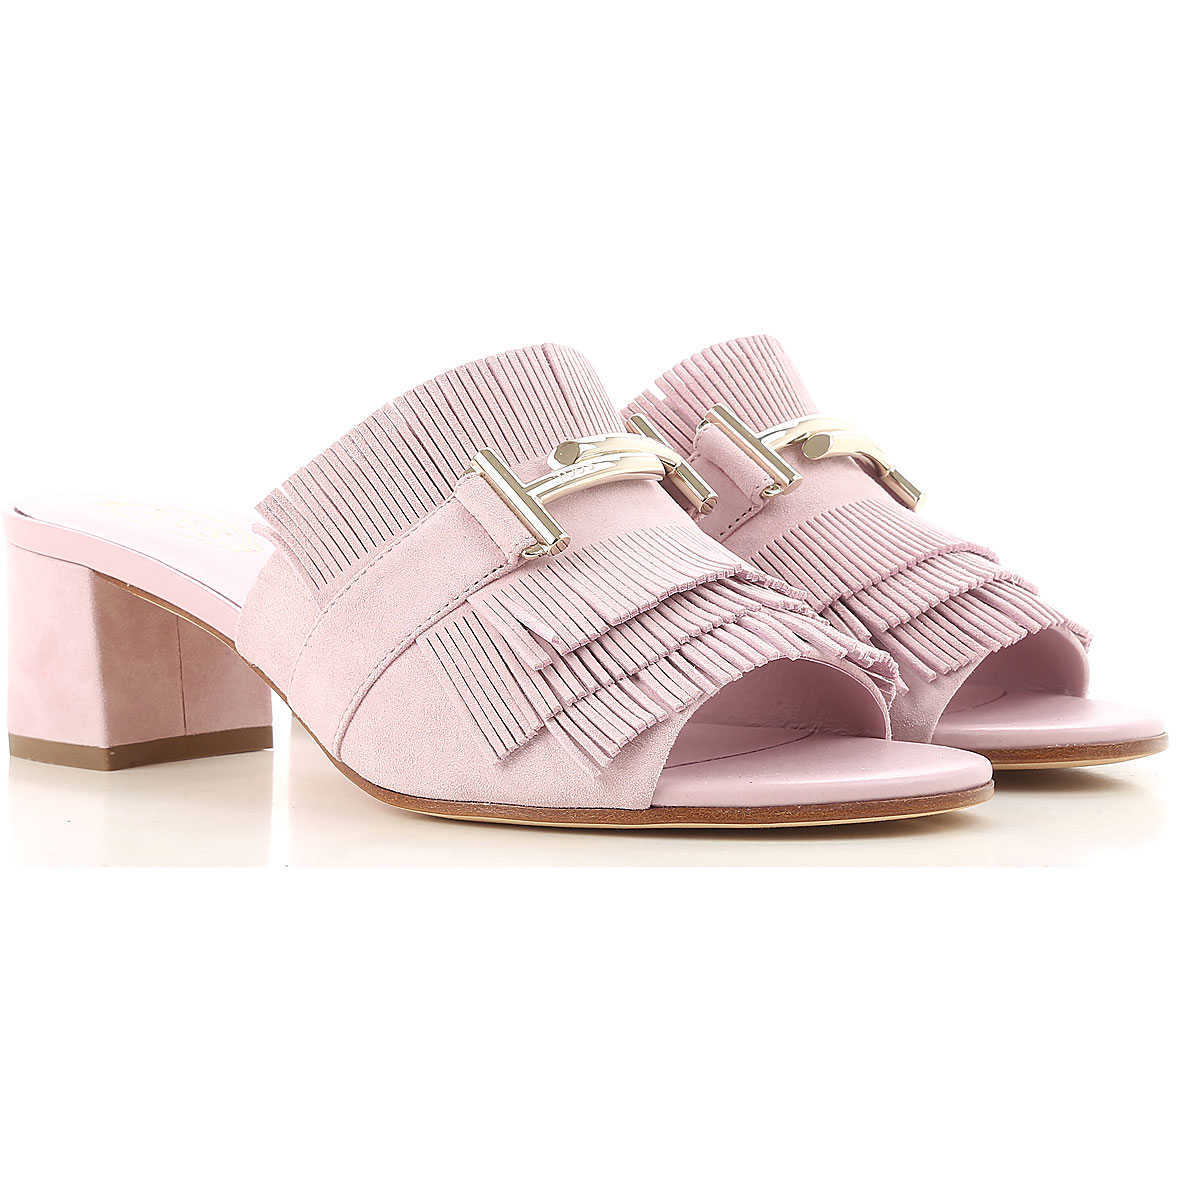 Tods Sandals for Women On Sale in Outlet